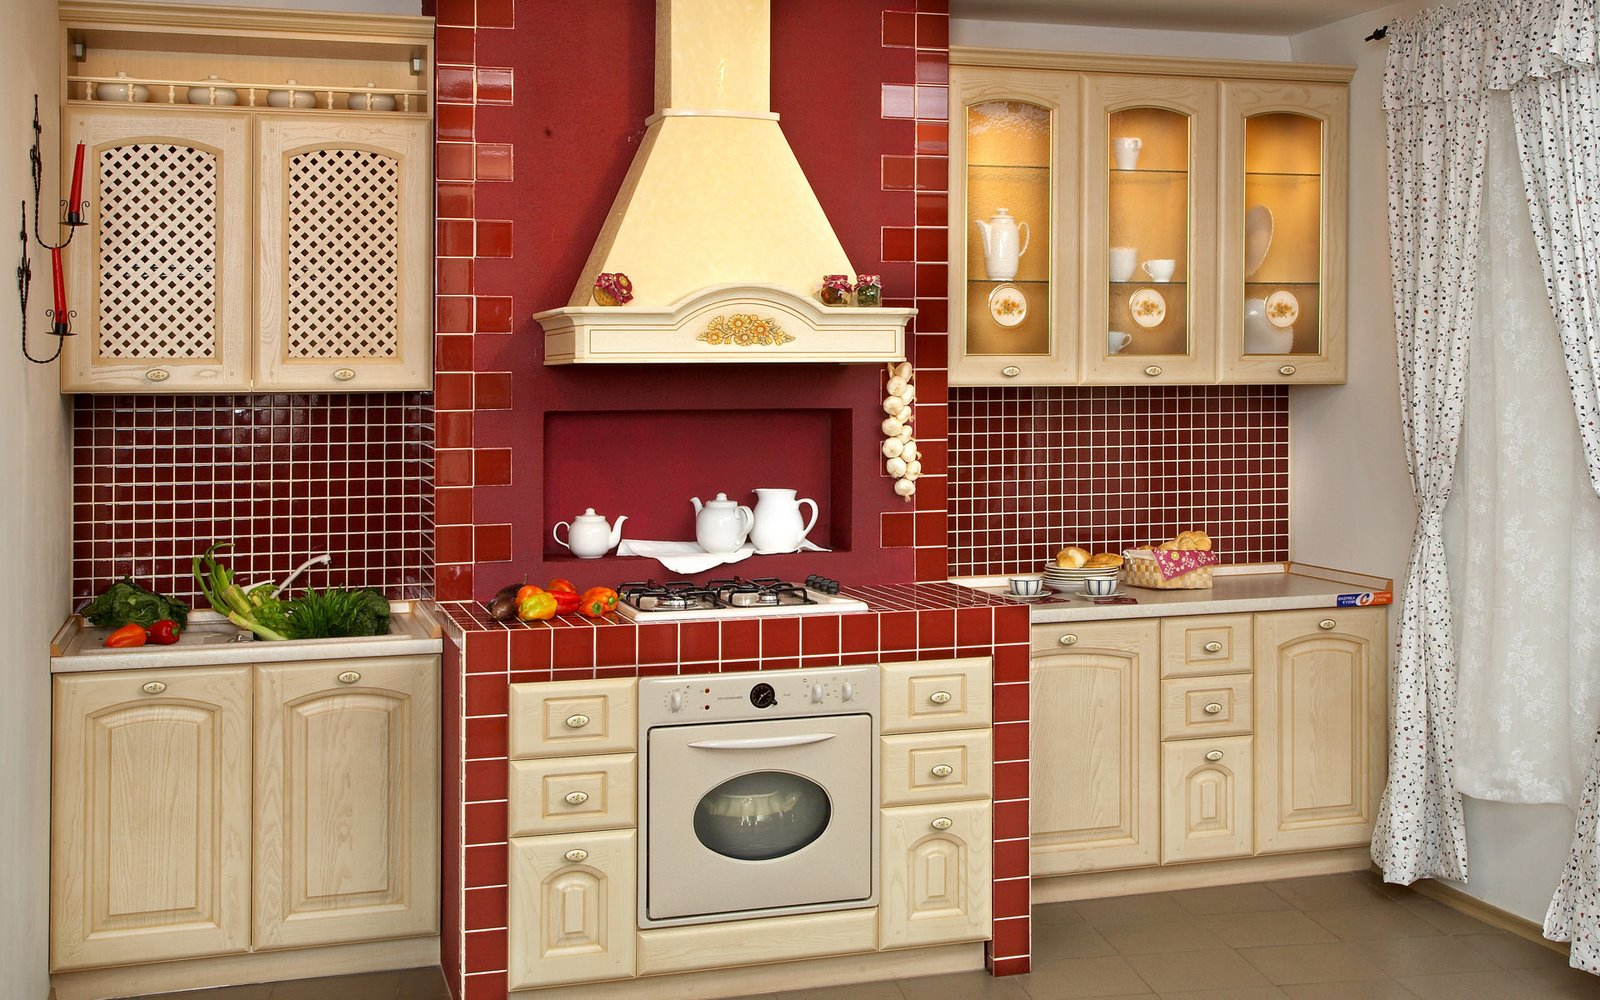 Country Style Kitchen Backsplash Ideas